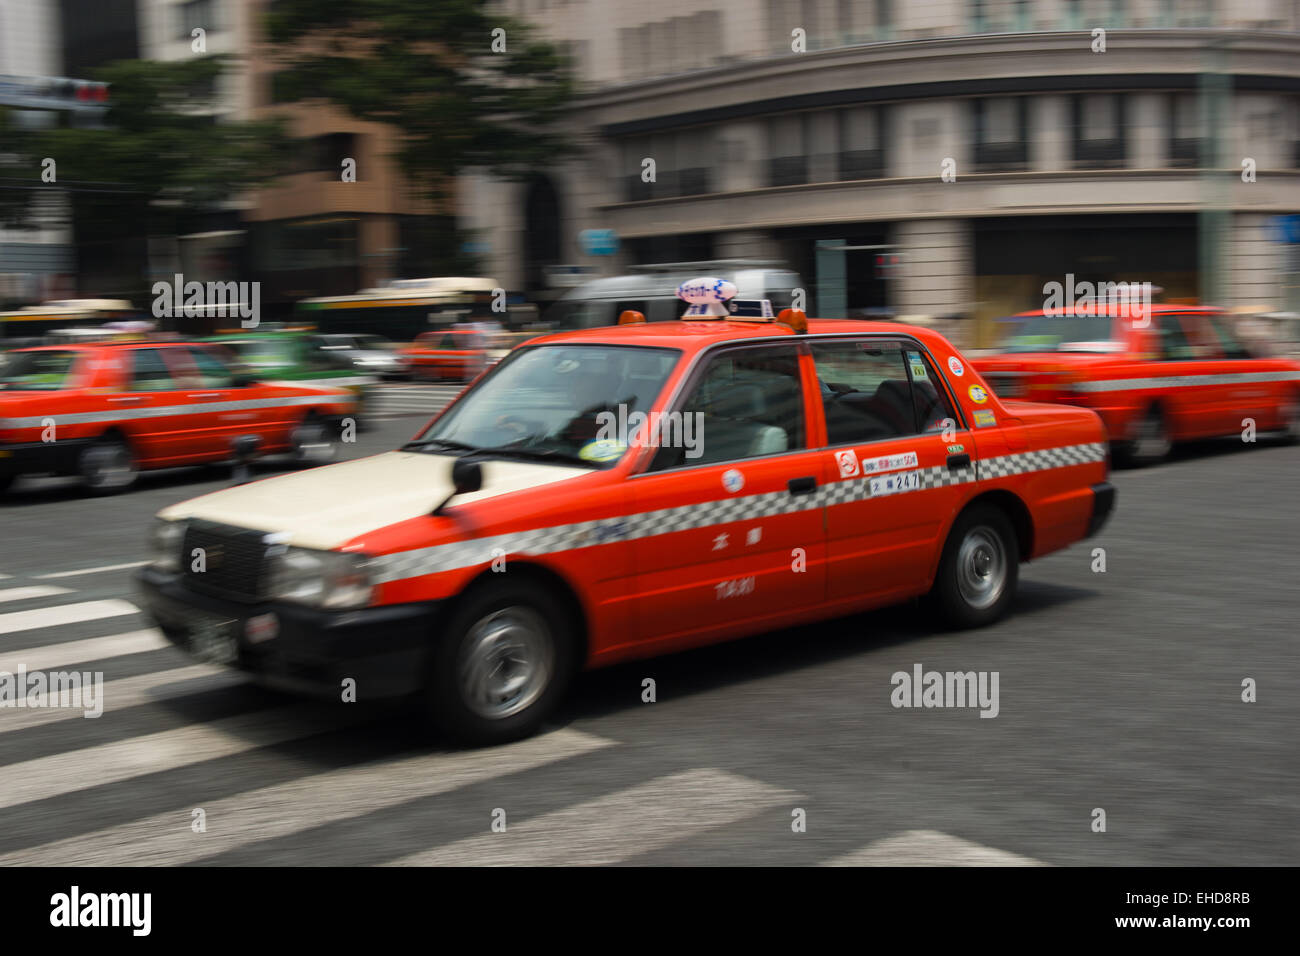 Taxis in Tokyo, Japan - At Ginza Station. - Stock Image